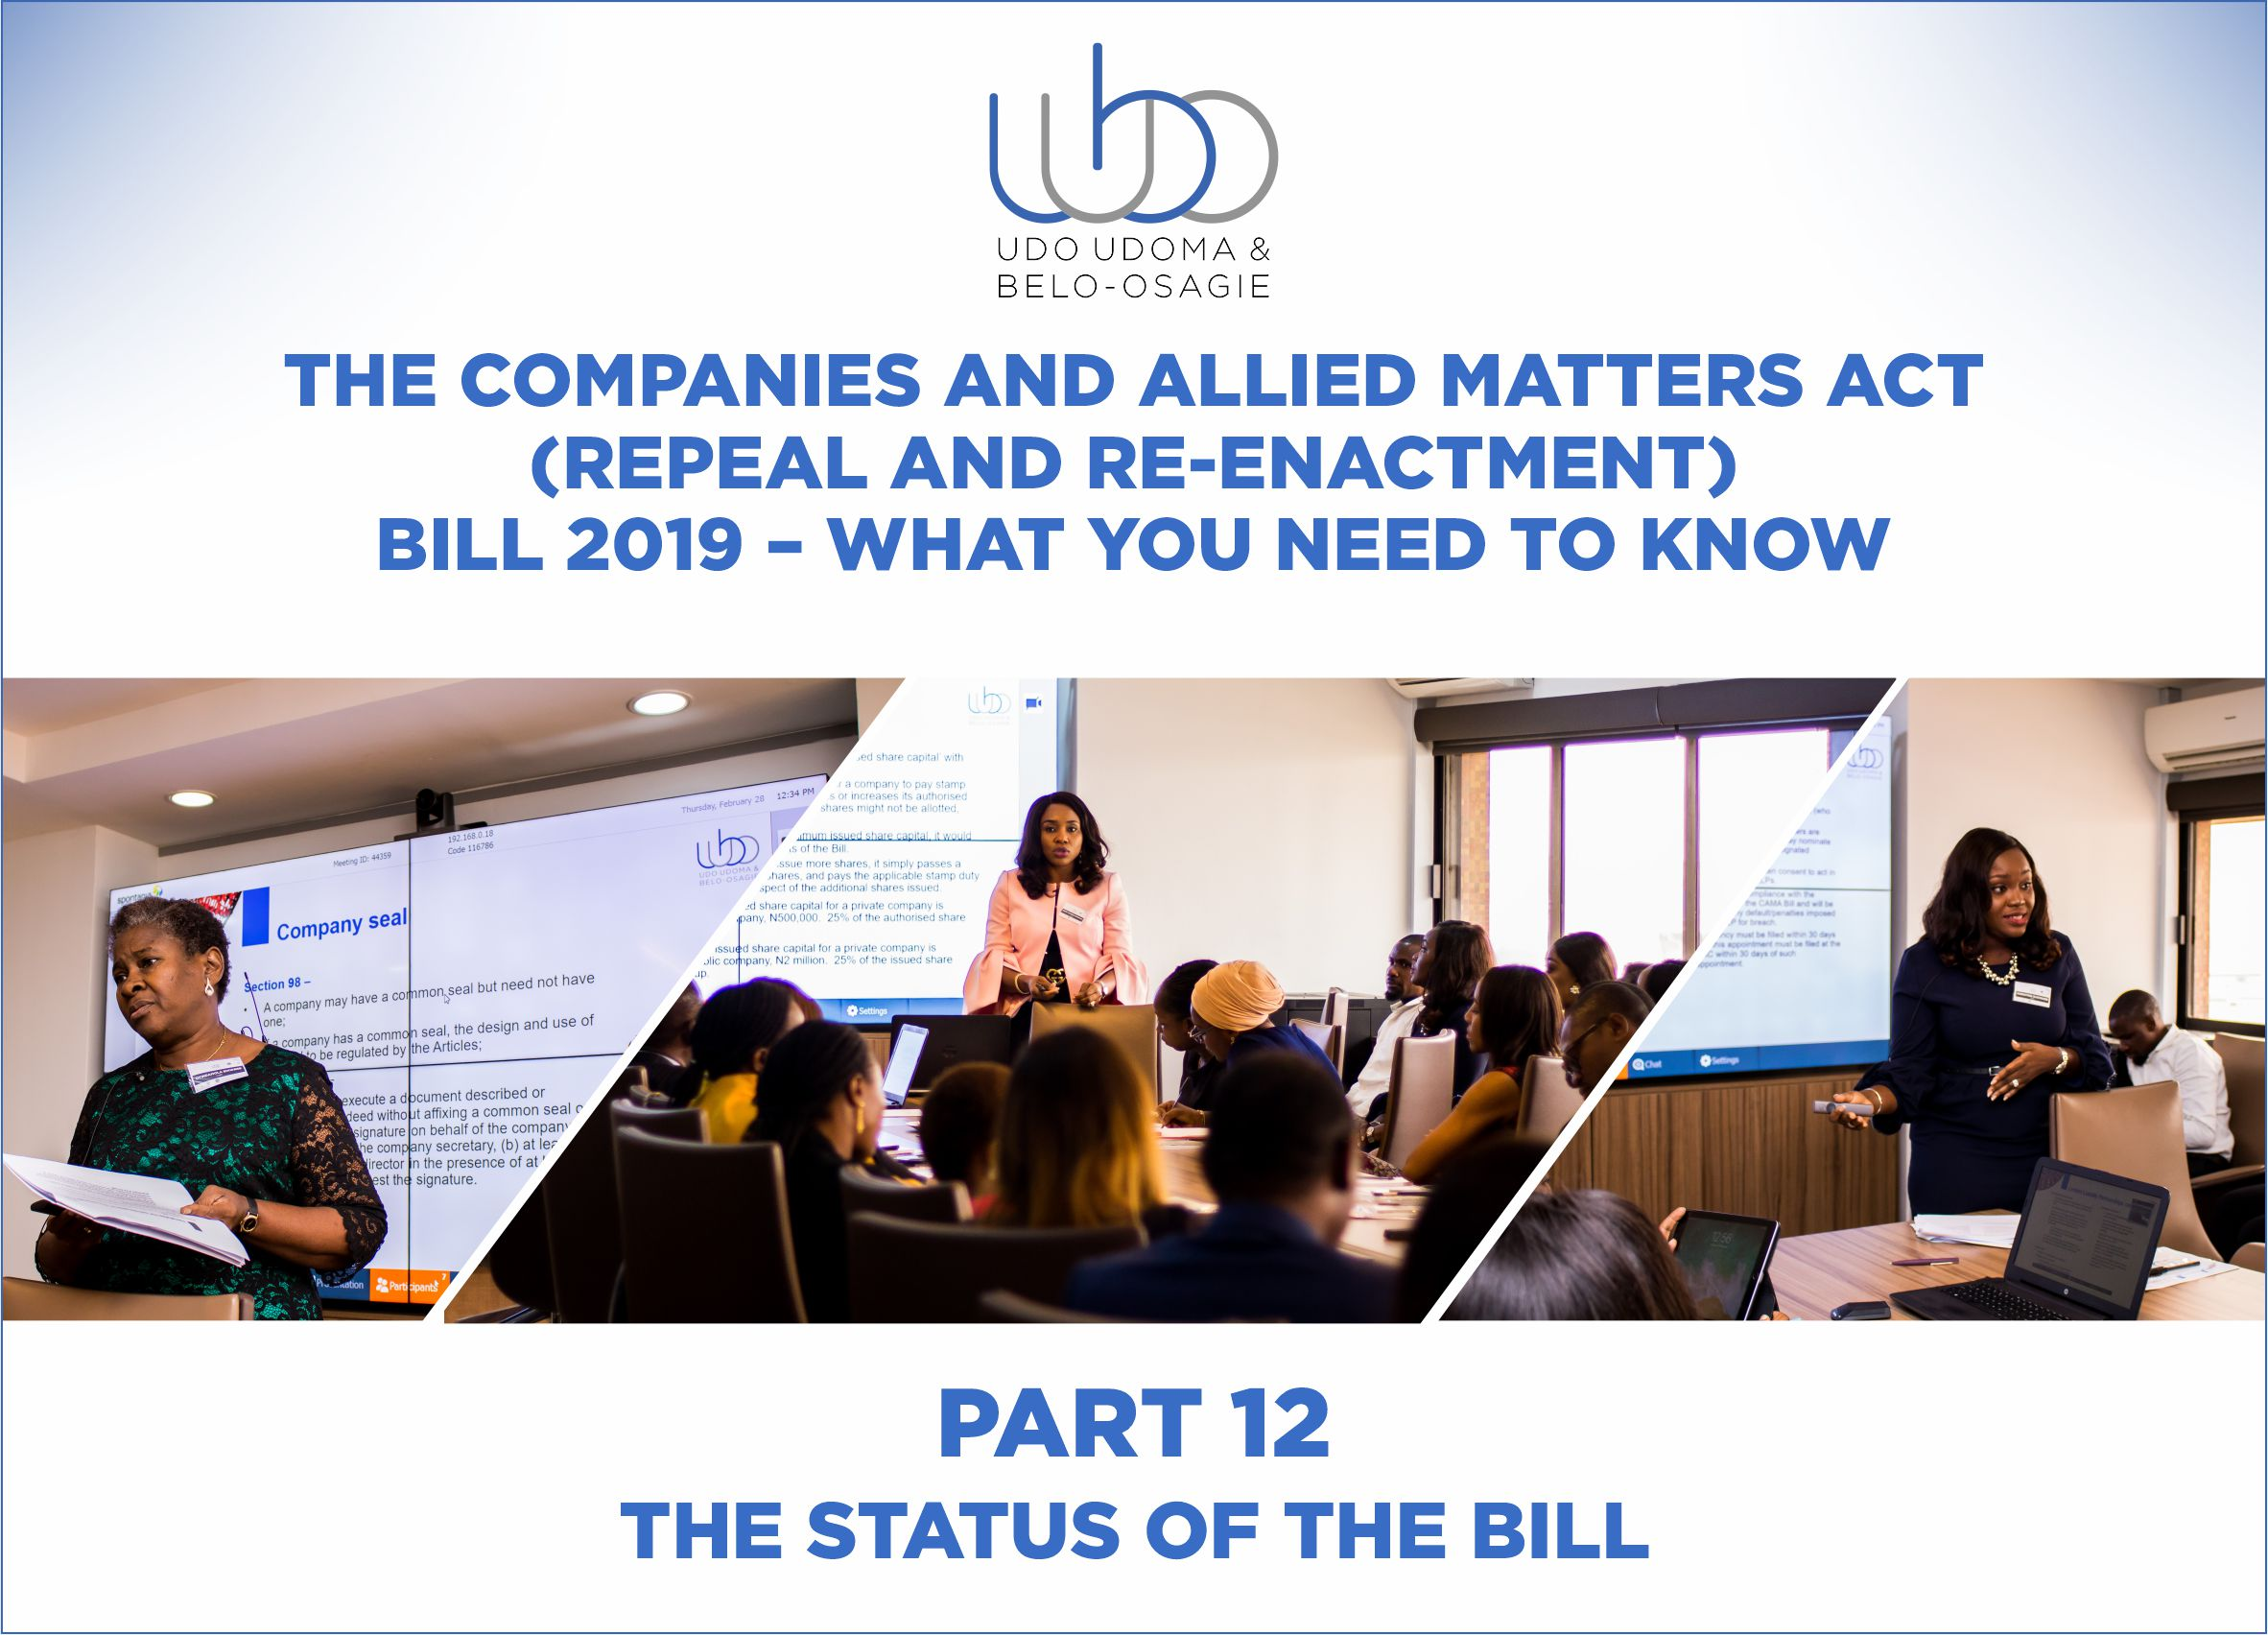 THE COMPANIES AND ALLIED MATTERS (REPEAL AND RE-ENACTMENT BILL) 2018 – PART 12